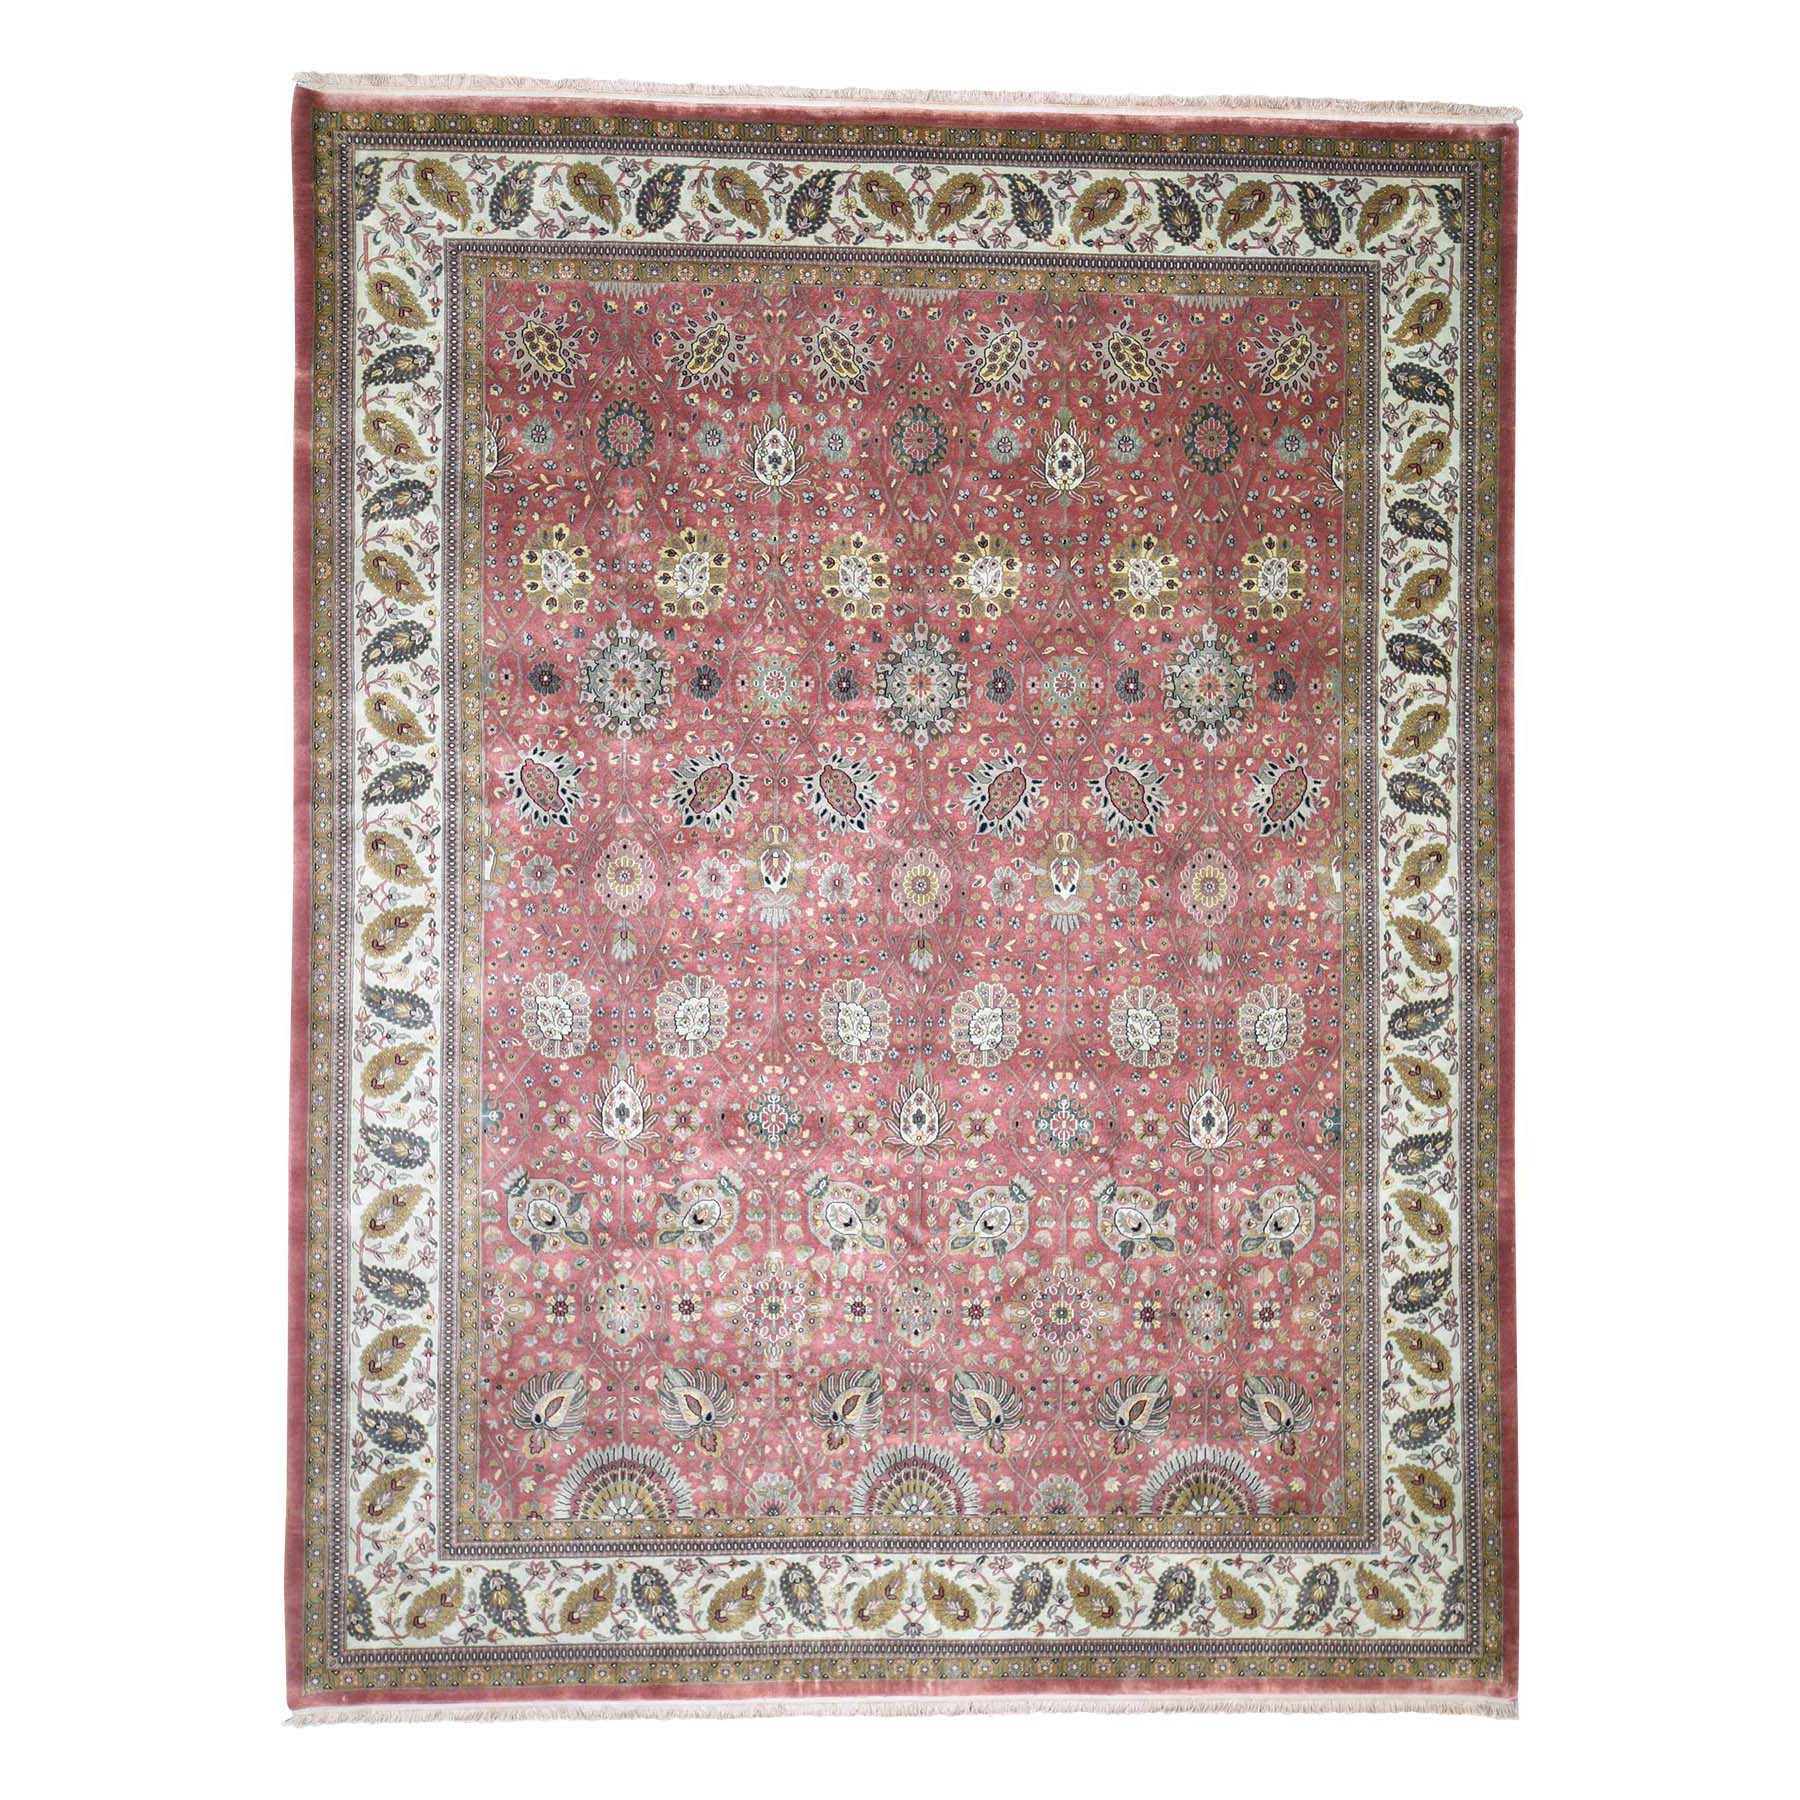 Pirniakan Collection Hand Knotted Red Rug No: 190244